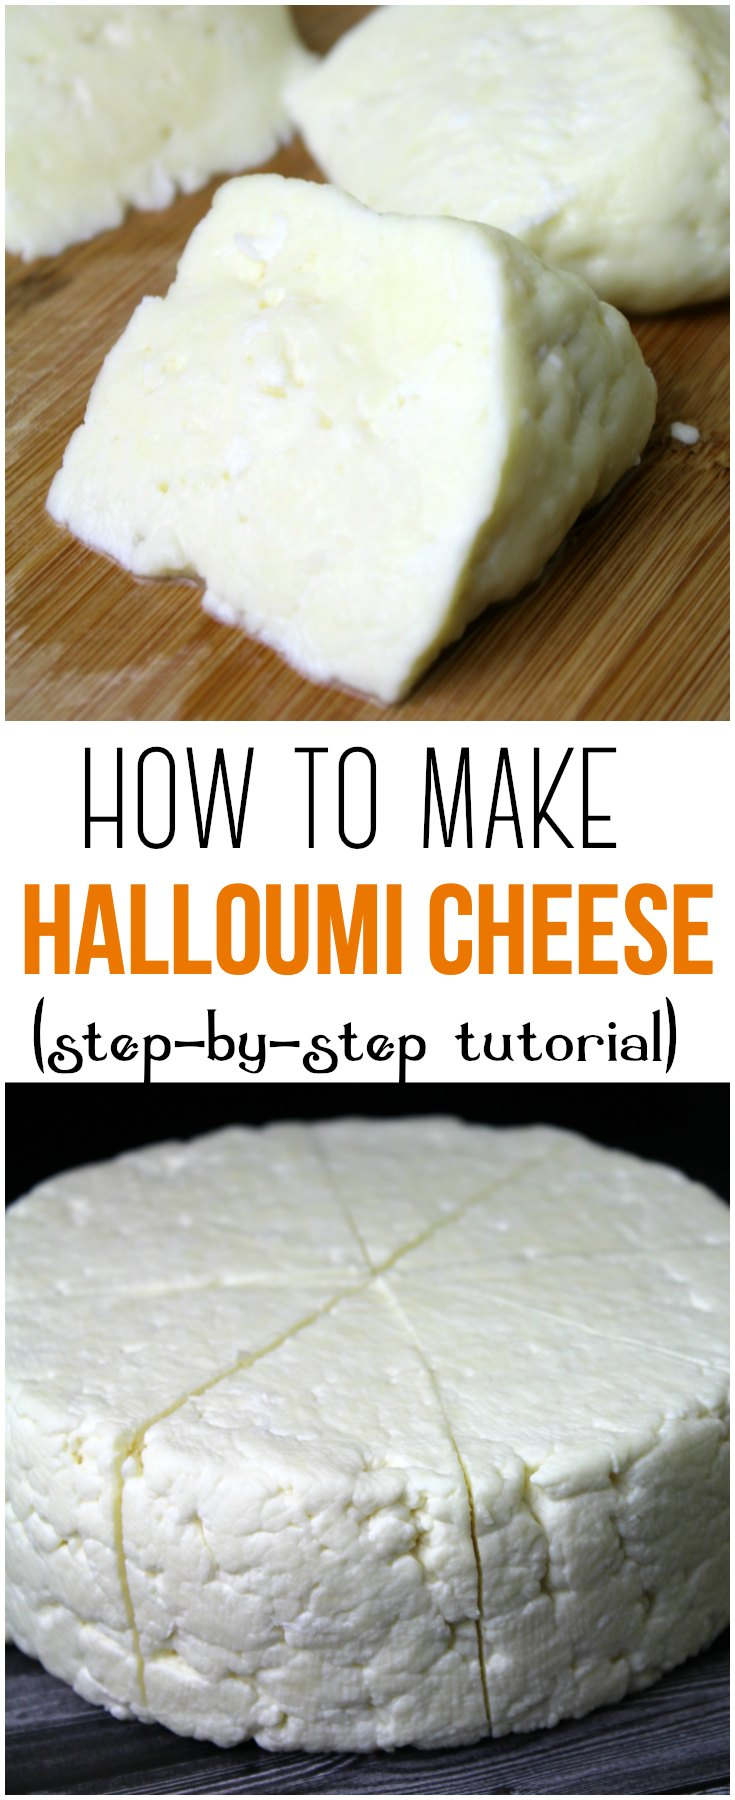 Learn how to make delicious Halloumi Cheese at home with this easy to follow, step-by-step tutorial and just a few simple ingredients!    #halloumi #cheese #cheesemaking #rawmilk #tutorial